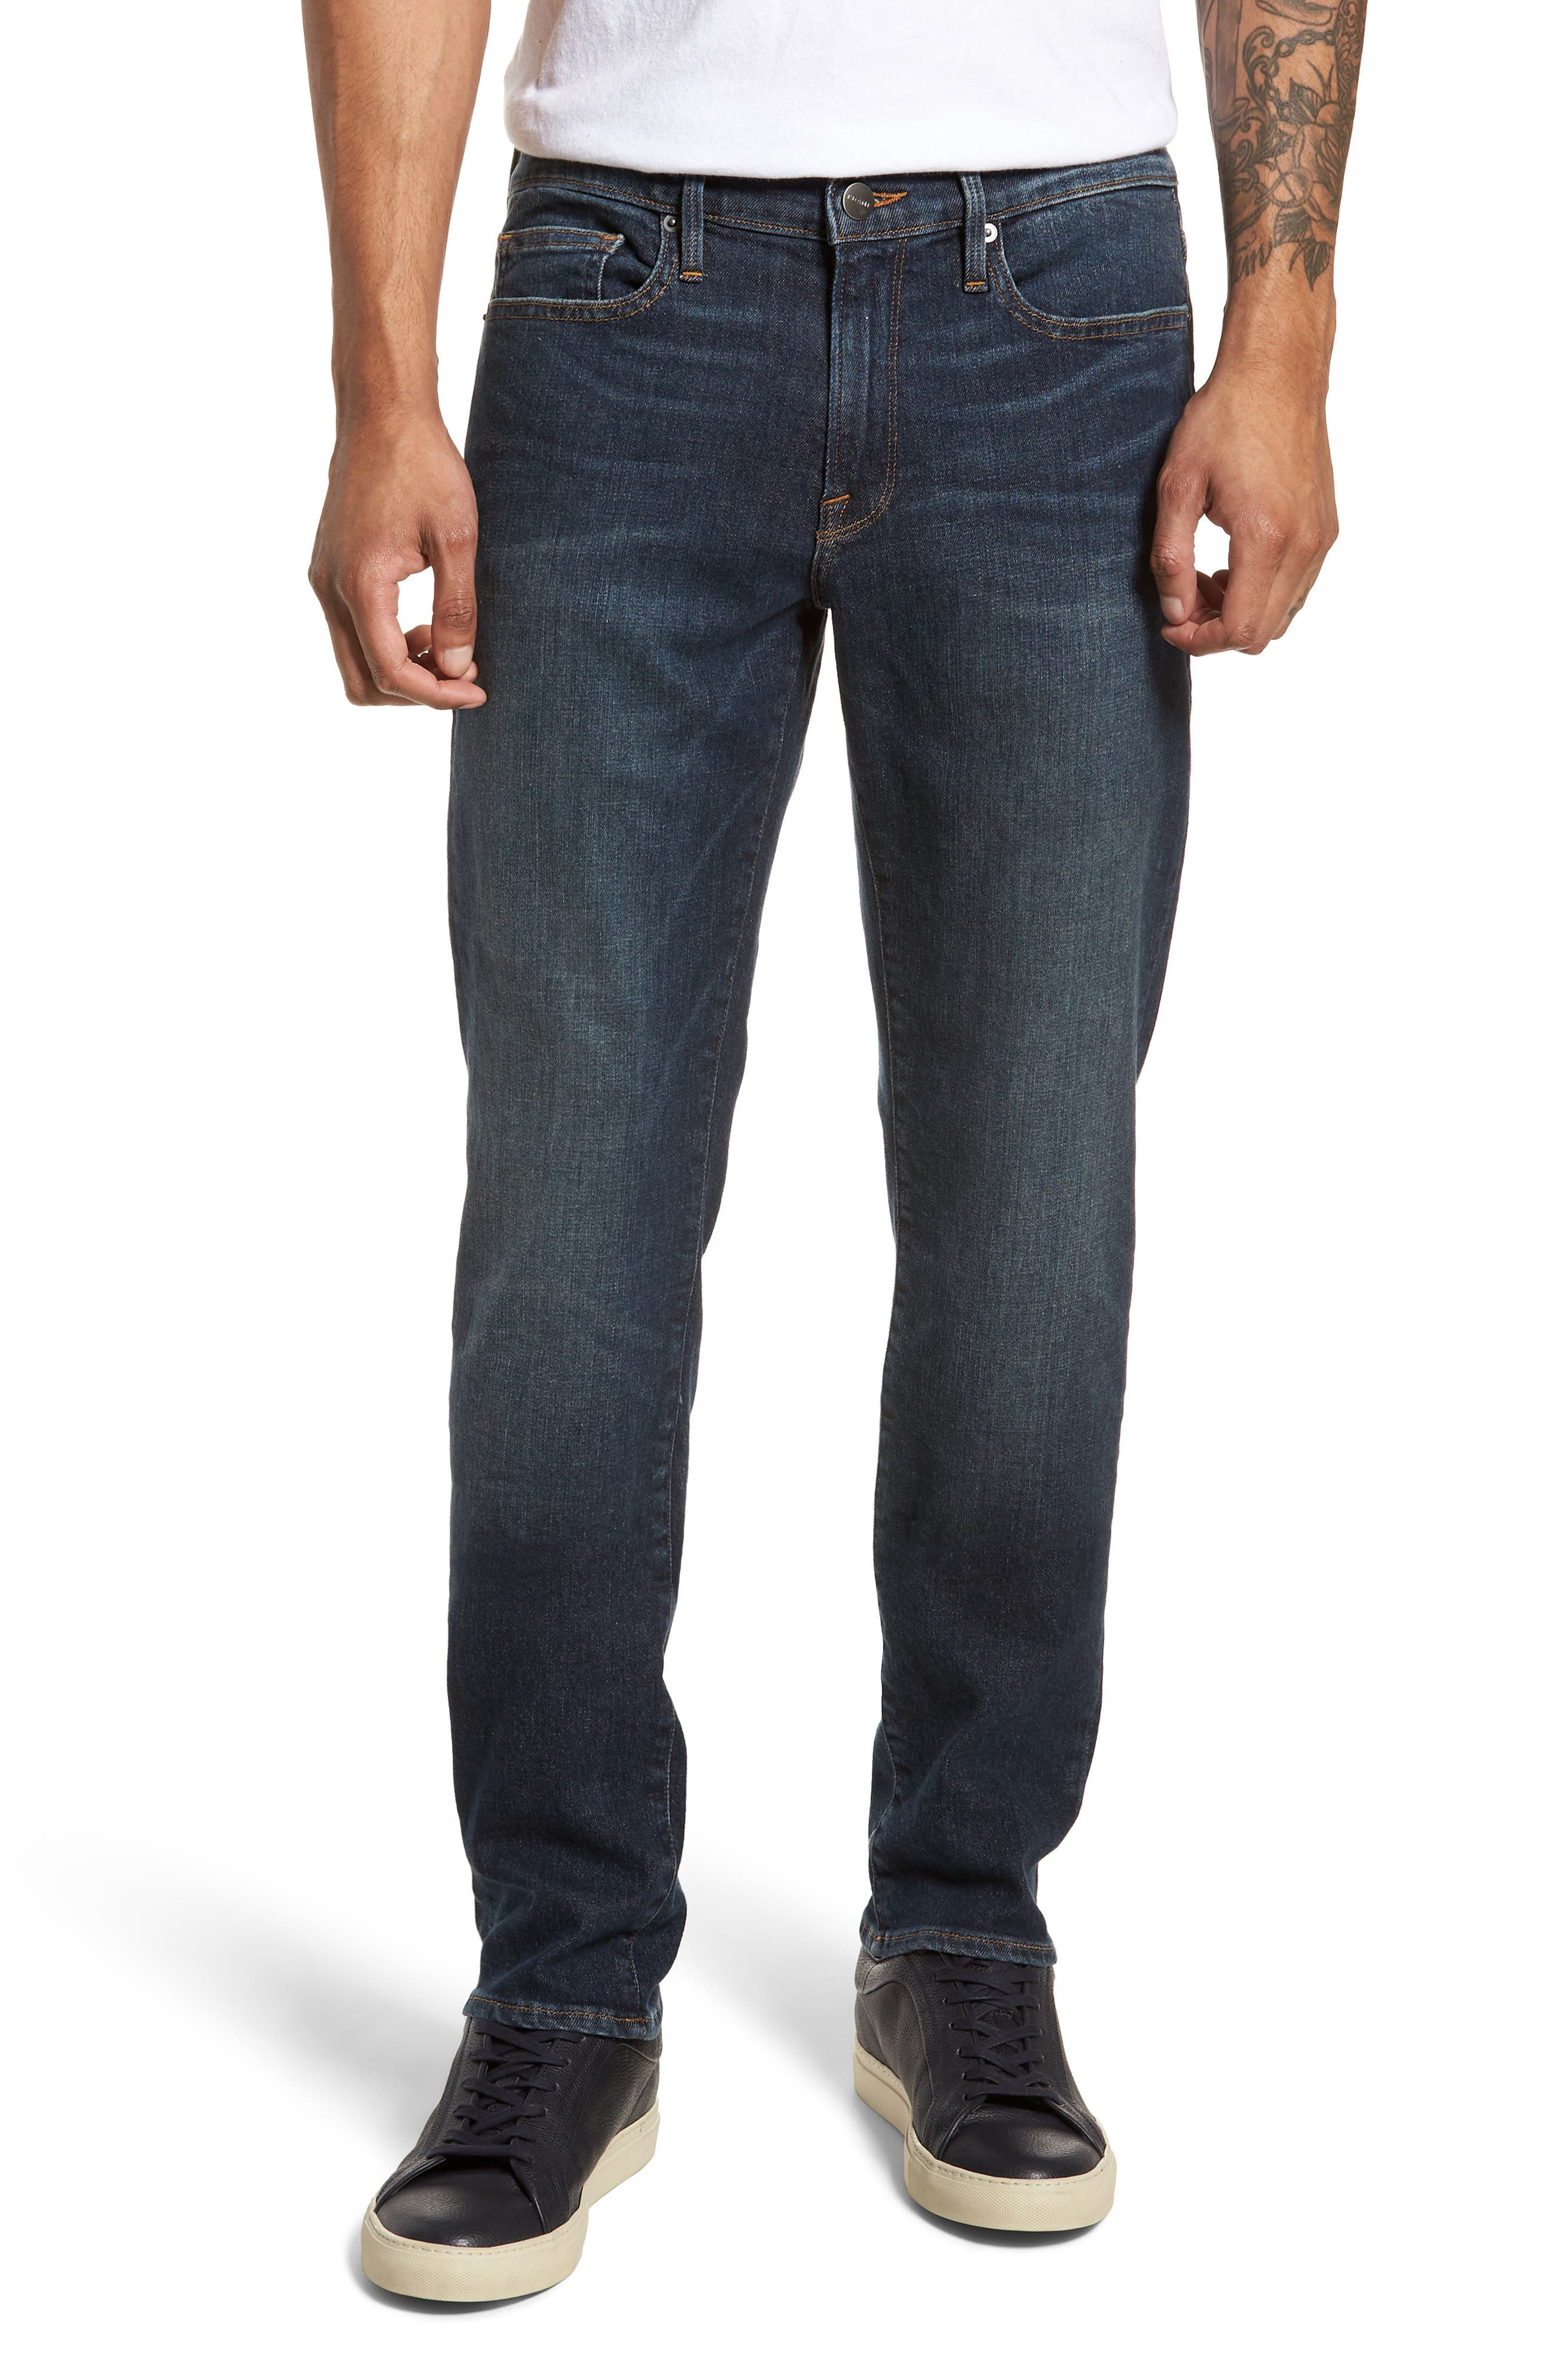 FRAME L'Homme Slim Fit Jeans (Joshua Tree) (Nordstrom Exclusive Color)